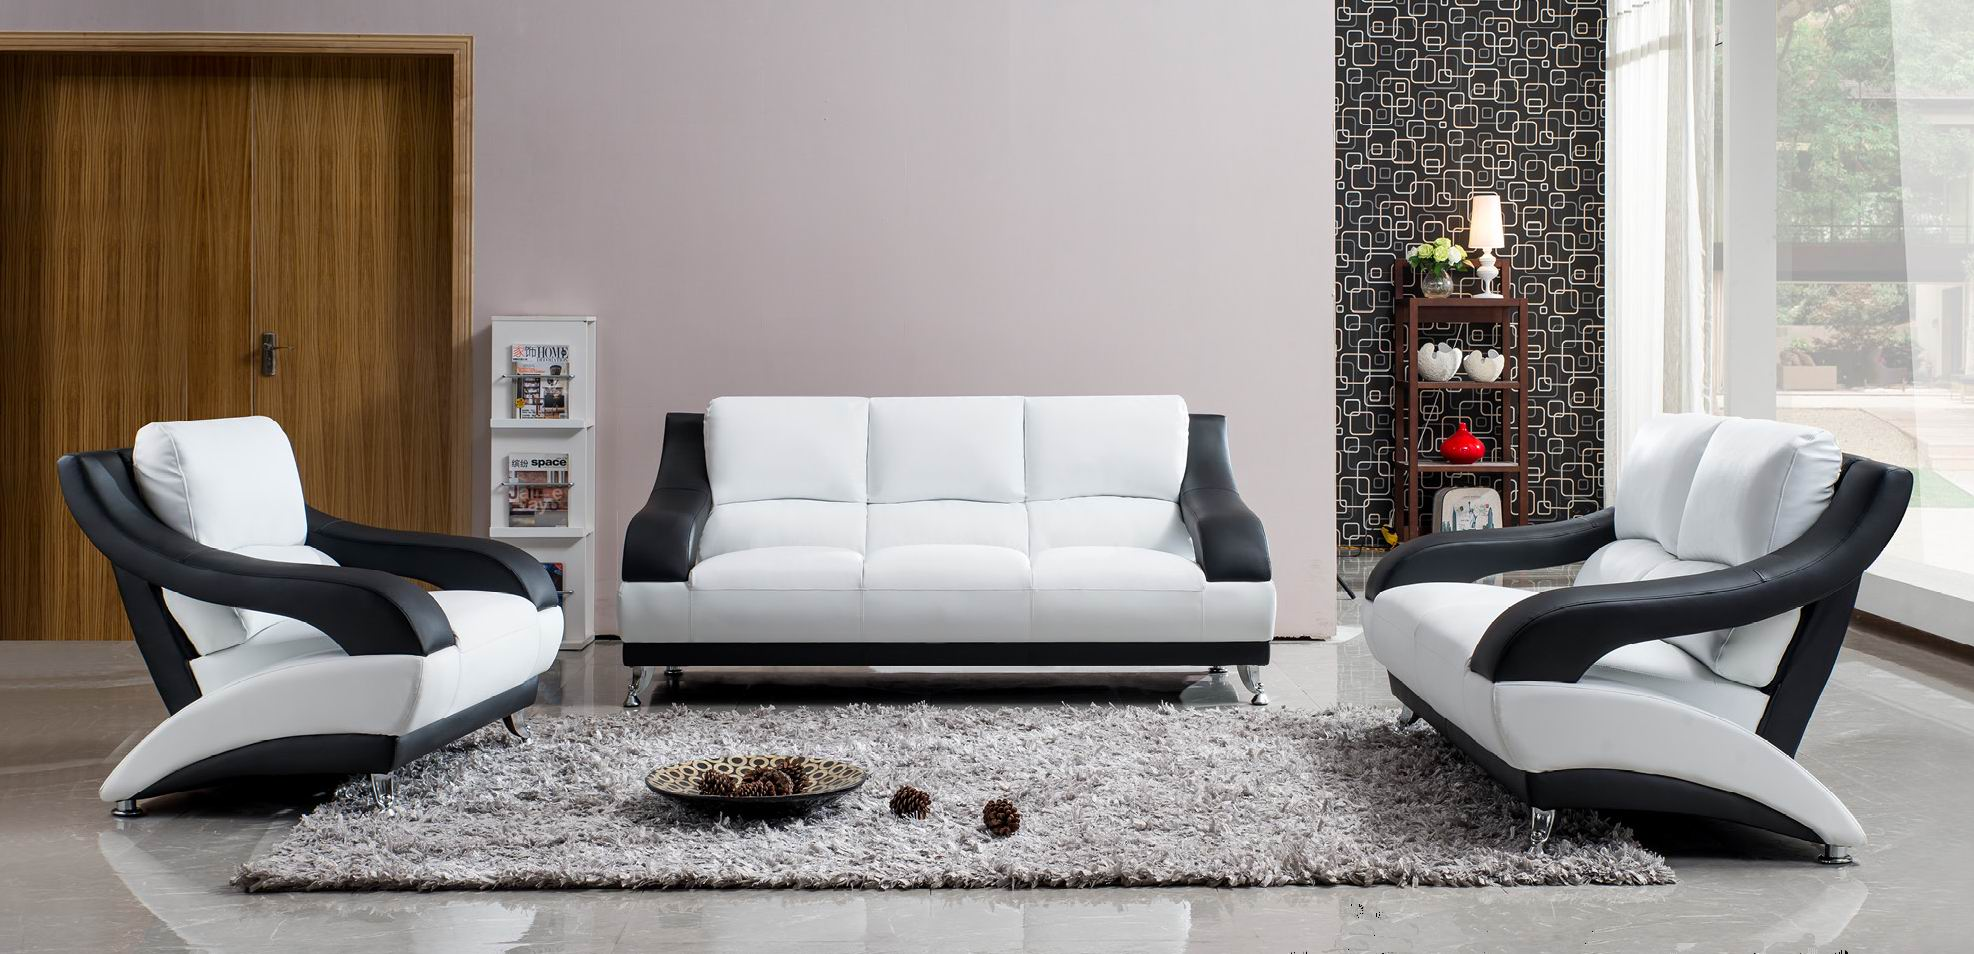 White Leather Sofa Set With Black, White Leather Living Room Set